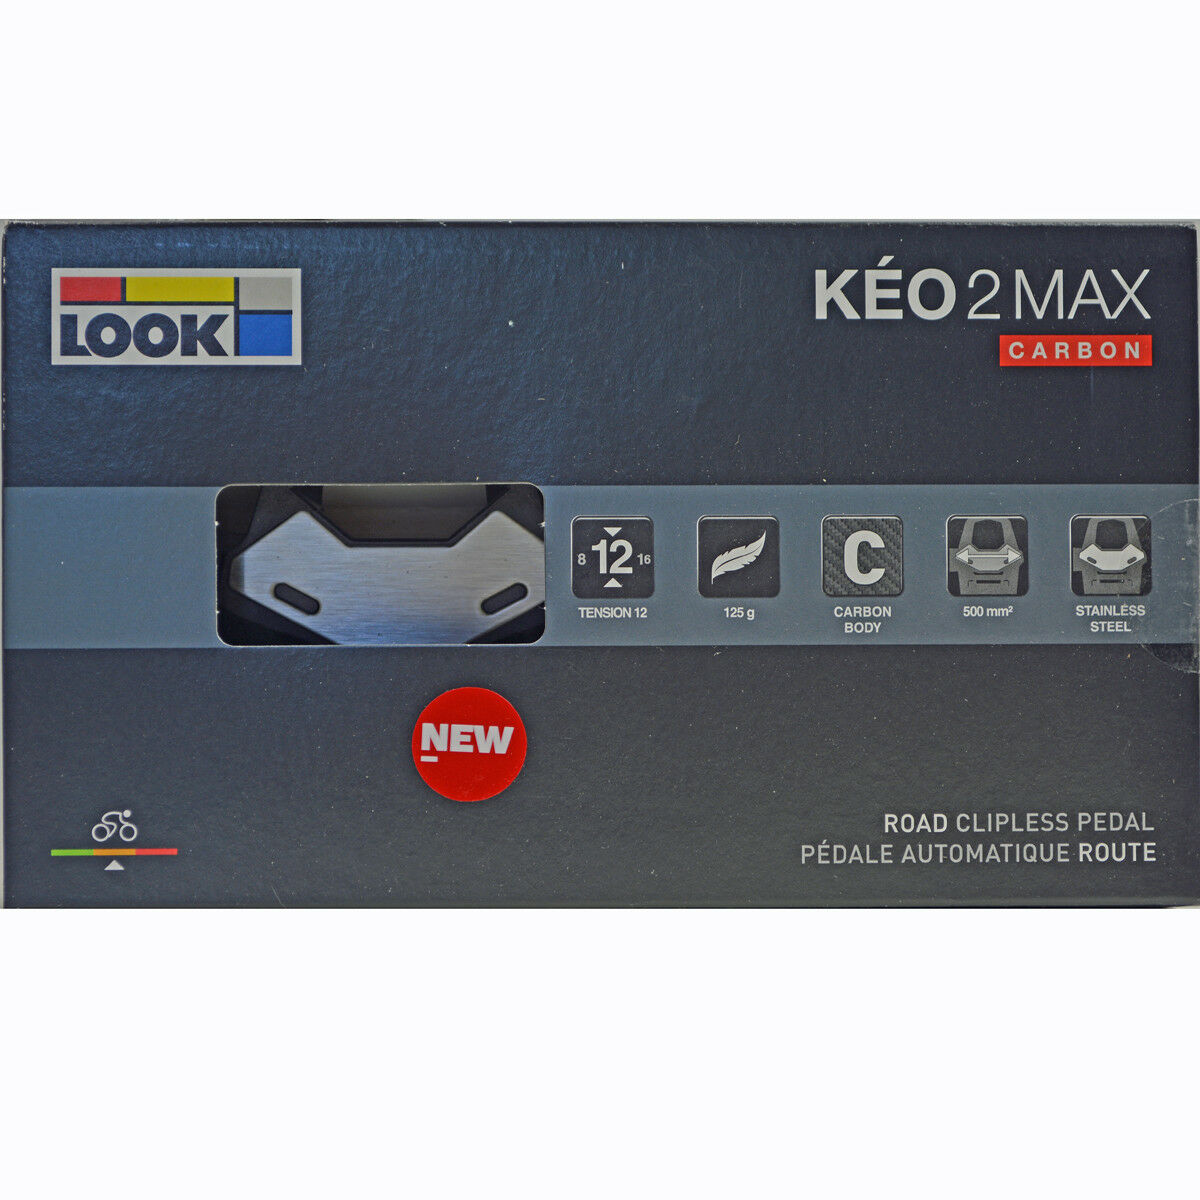 NEW  2018 LOOK KEO 2 Max CARBON Road Cycling Pedals & G  Grip Cleats Bolts  more discount